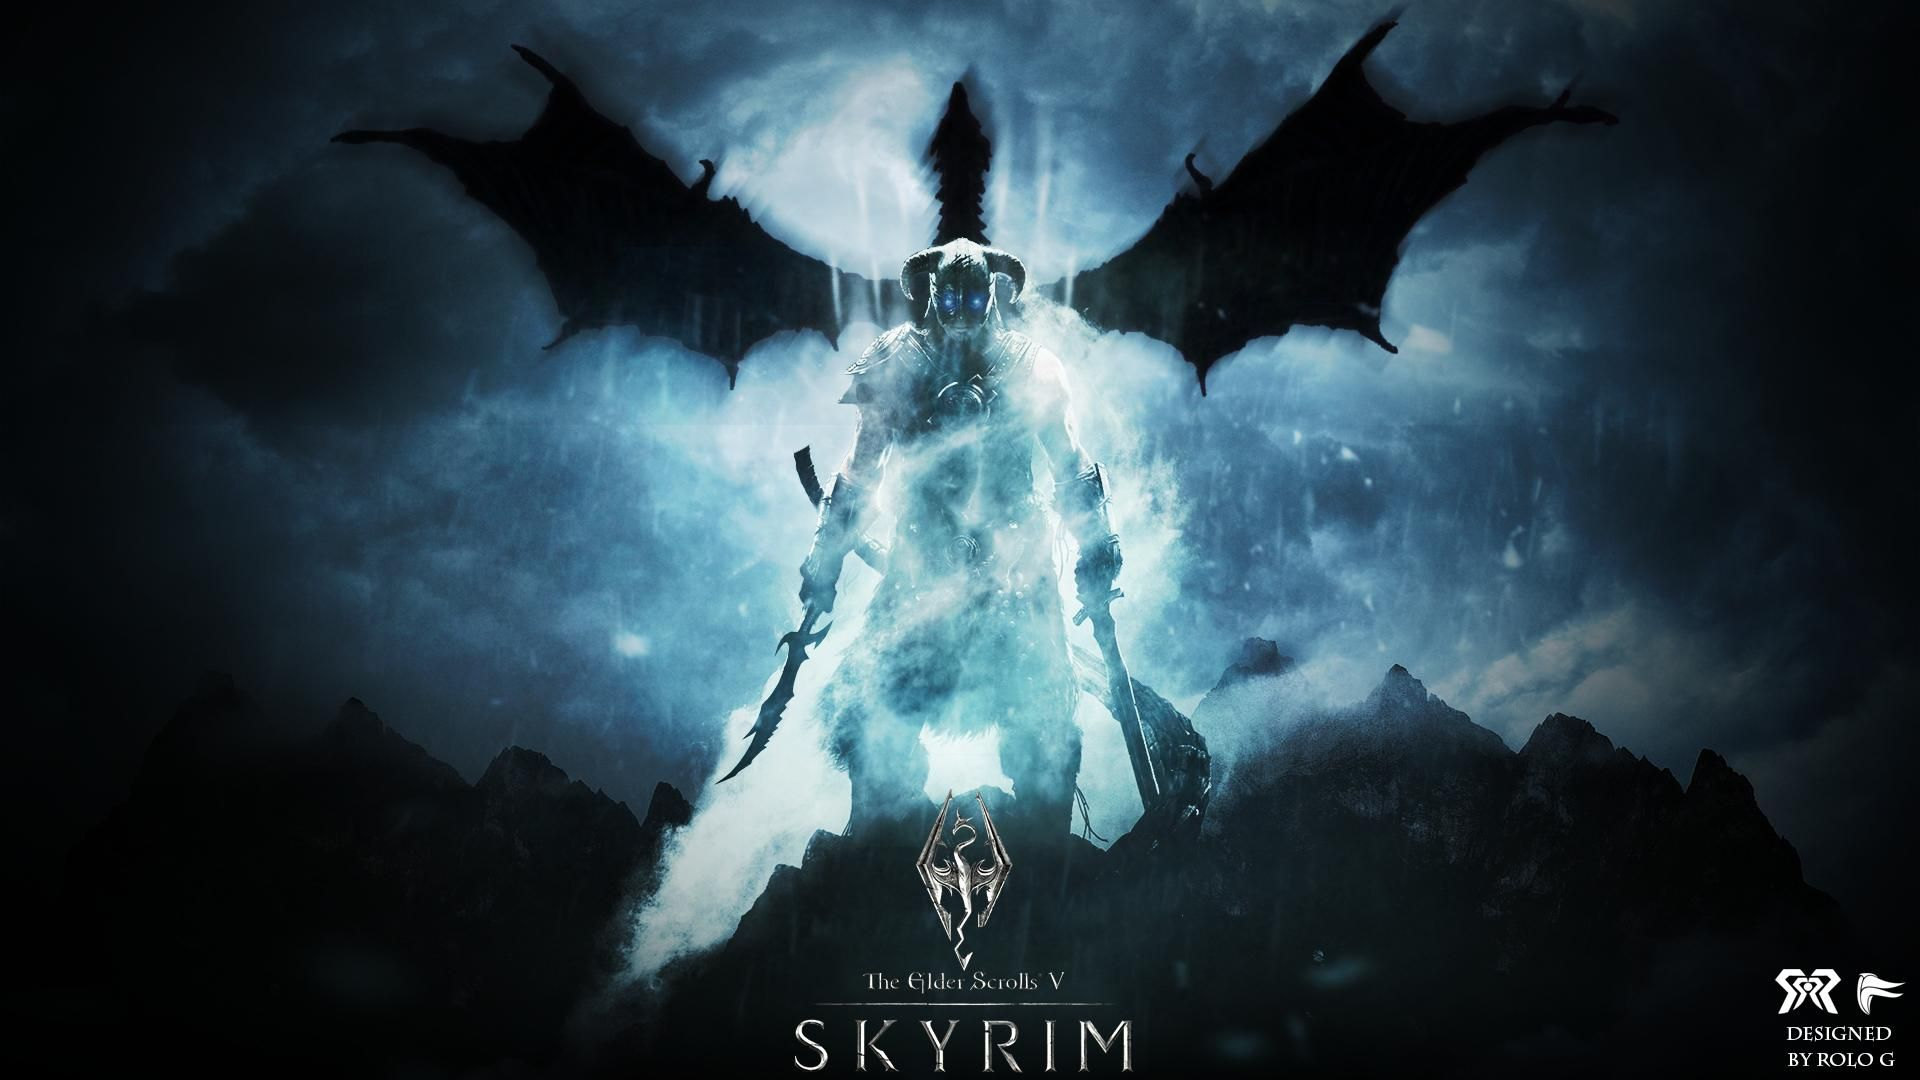 20 Skyrim Wallpapers 1920x1080p Skyrim Wallpaper and Wallpaper